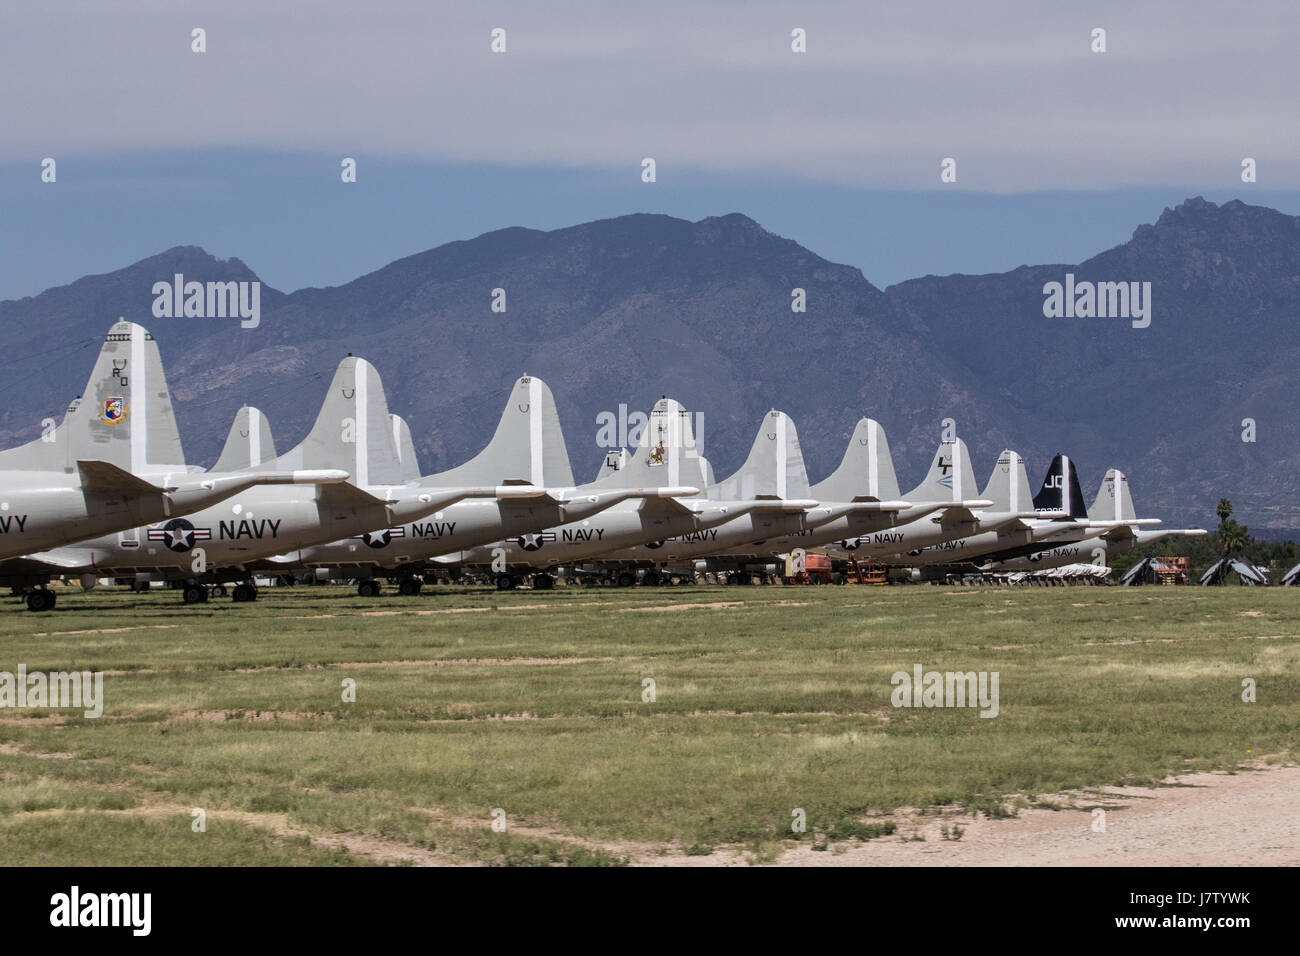 avy jets lilned up at the boneyard in New Mexico - Stock Image